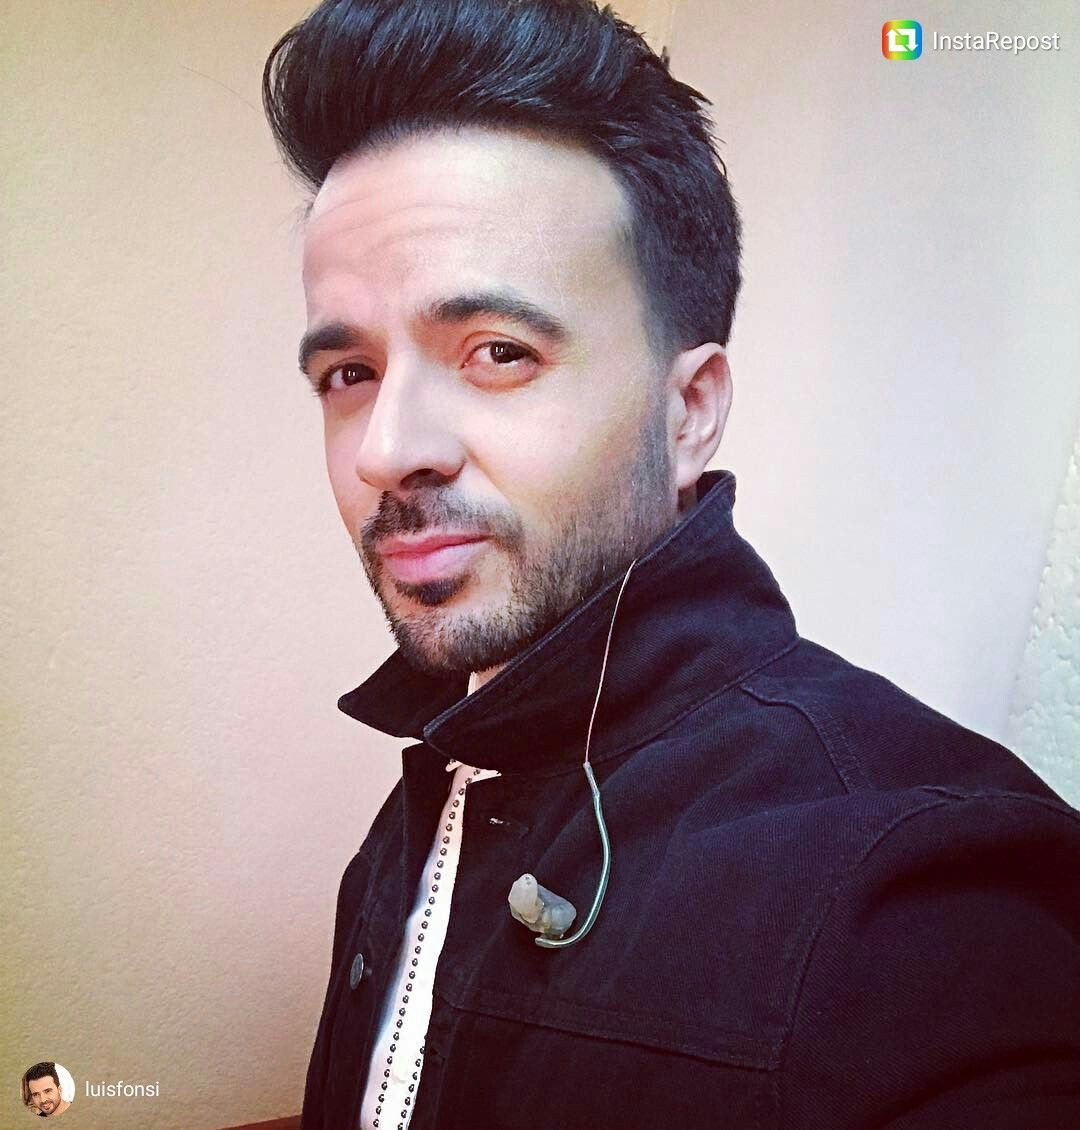 Luis Fonsi Haircut